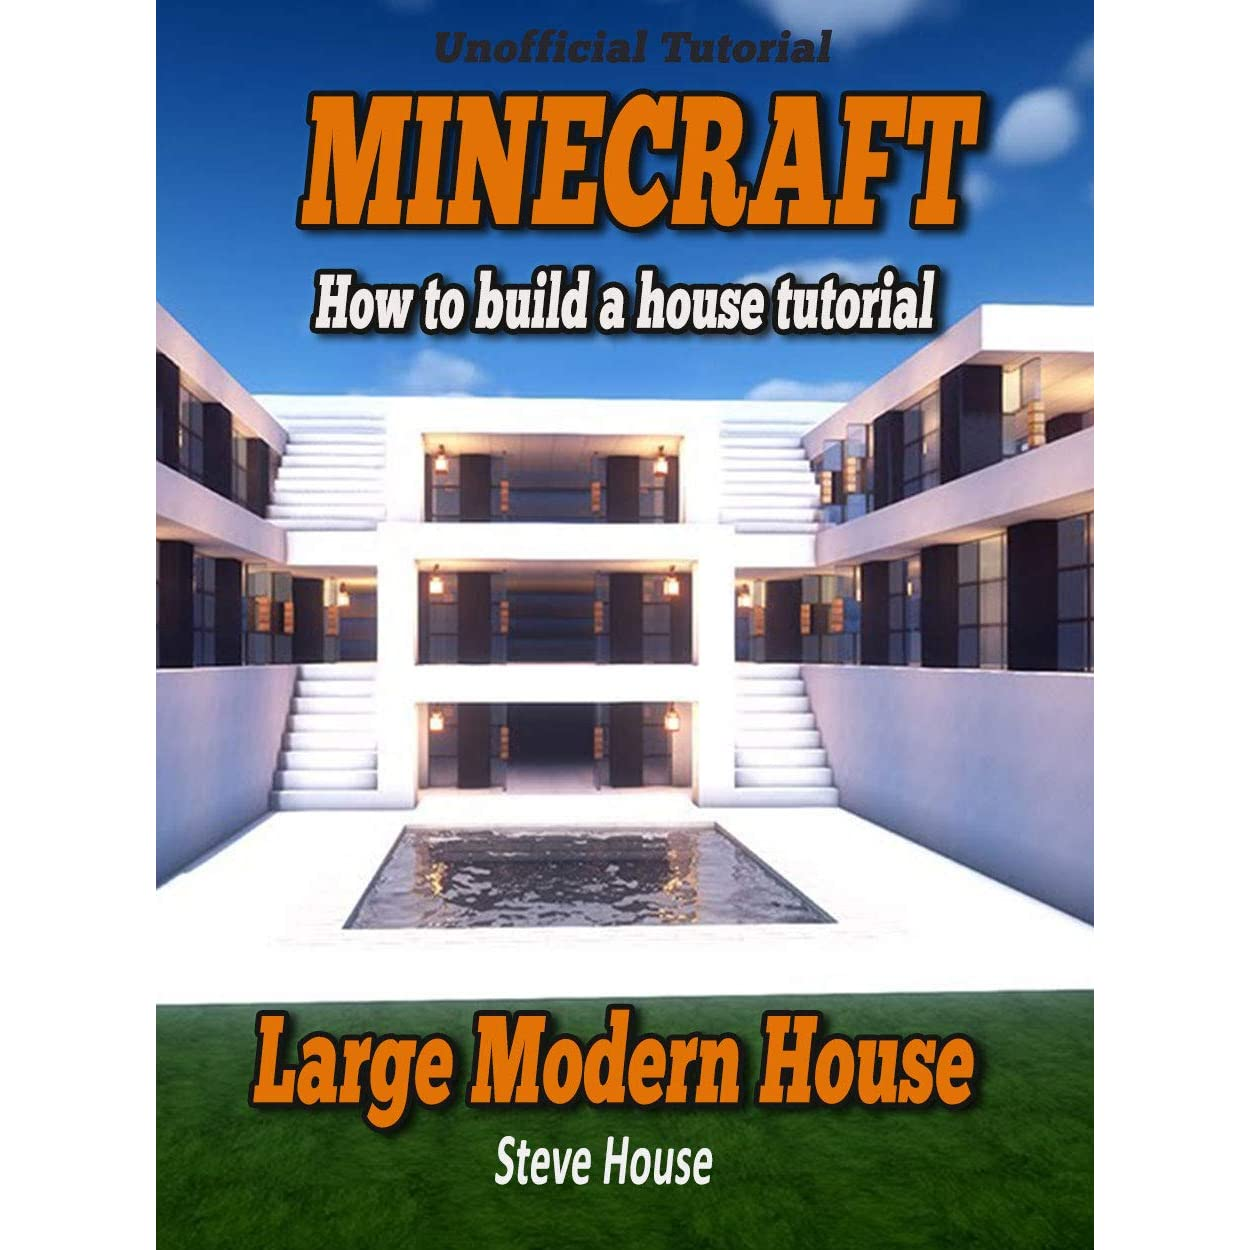 Minecraft Tutorial How To Build A Large Modern House Guide By Steve Bill